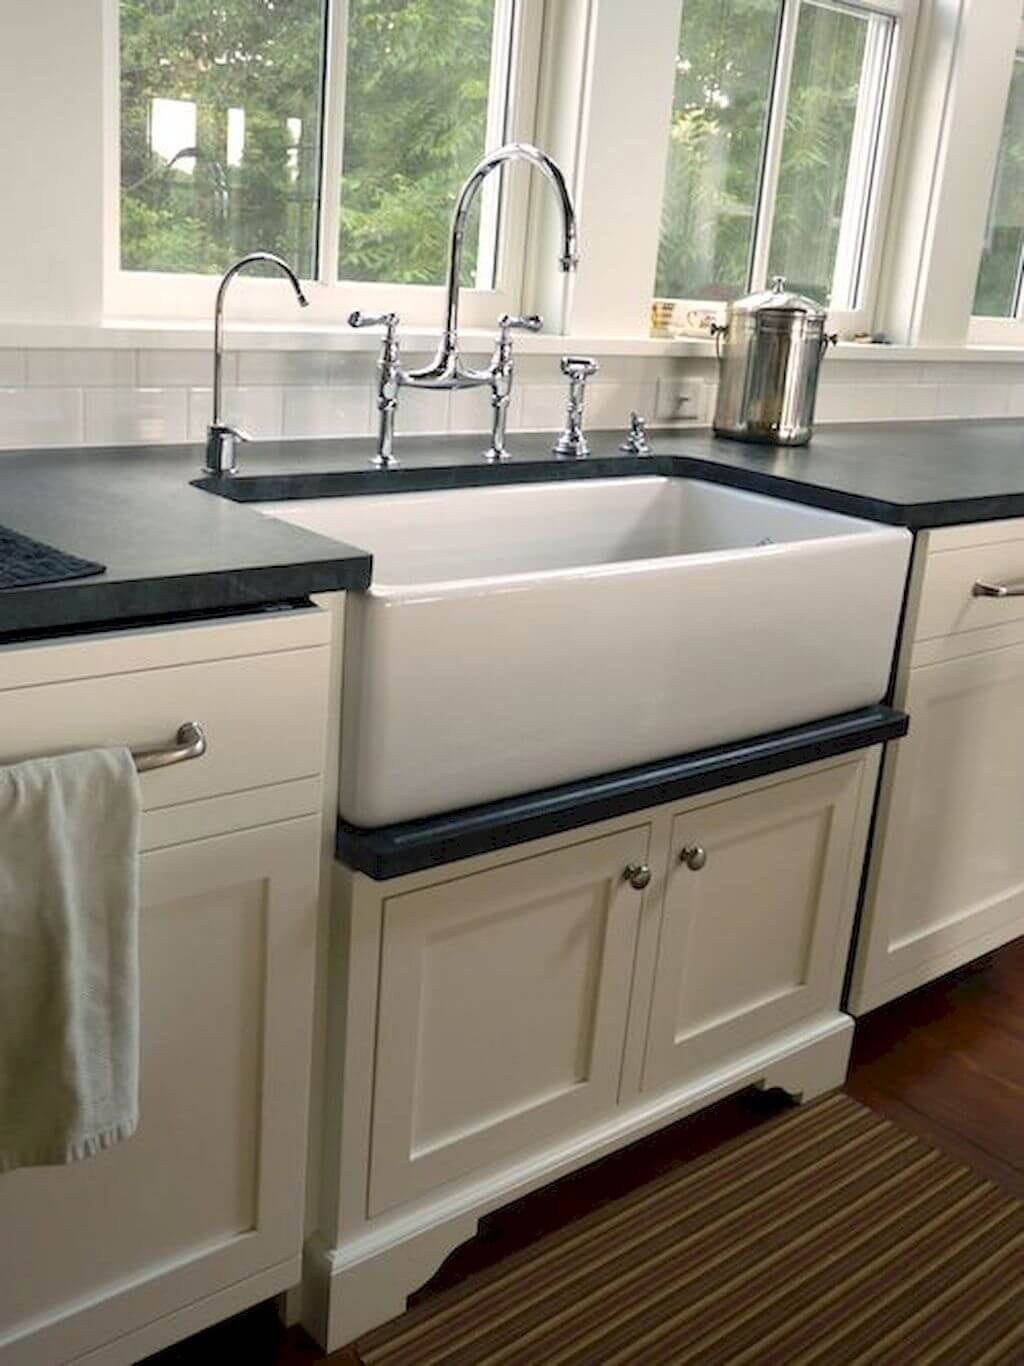 Basic White Sink With Polished Fixtures